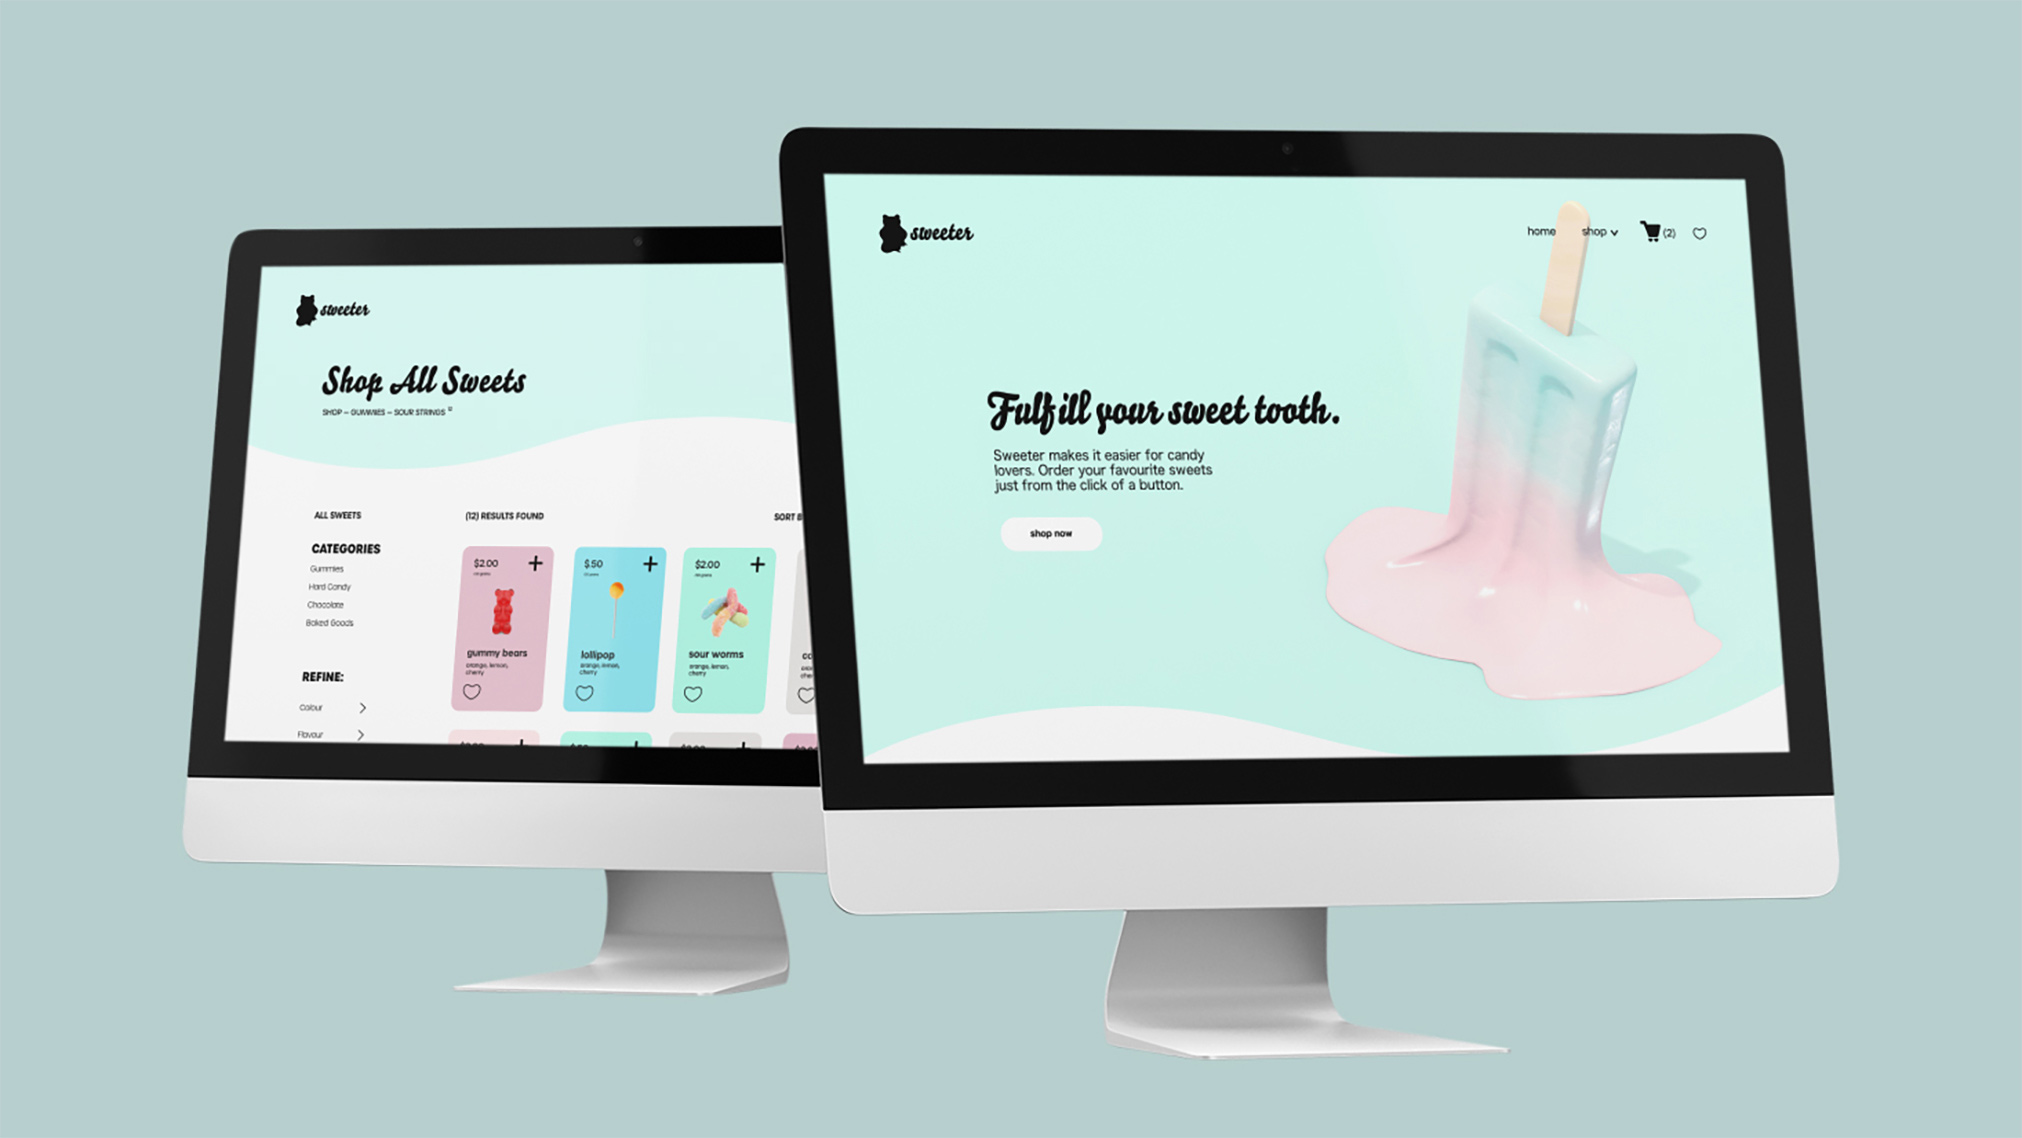 Sweeter is a mockup e-commerce company, selling an assortment of candy and other sweets. Their website provides a playful and vibrant shopping experience.